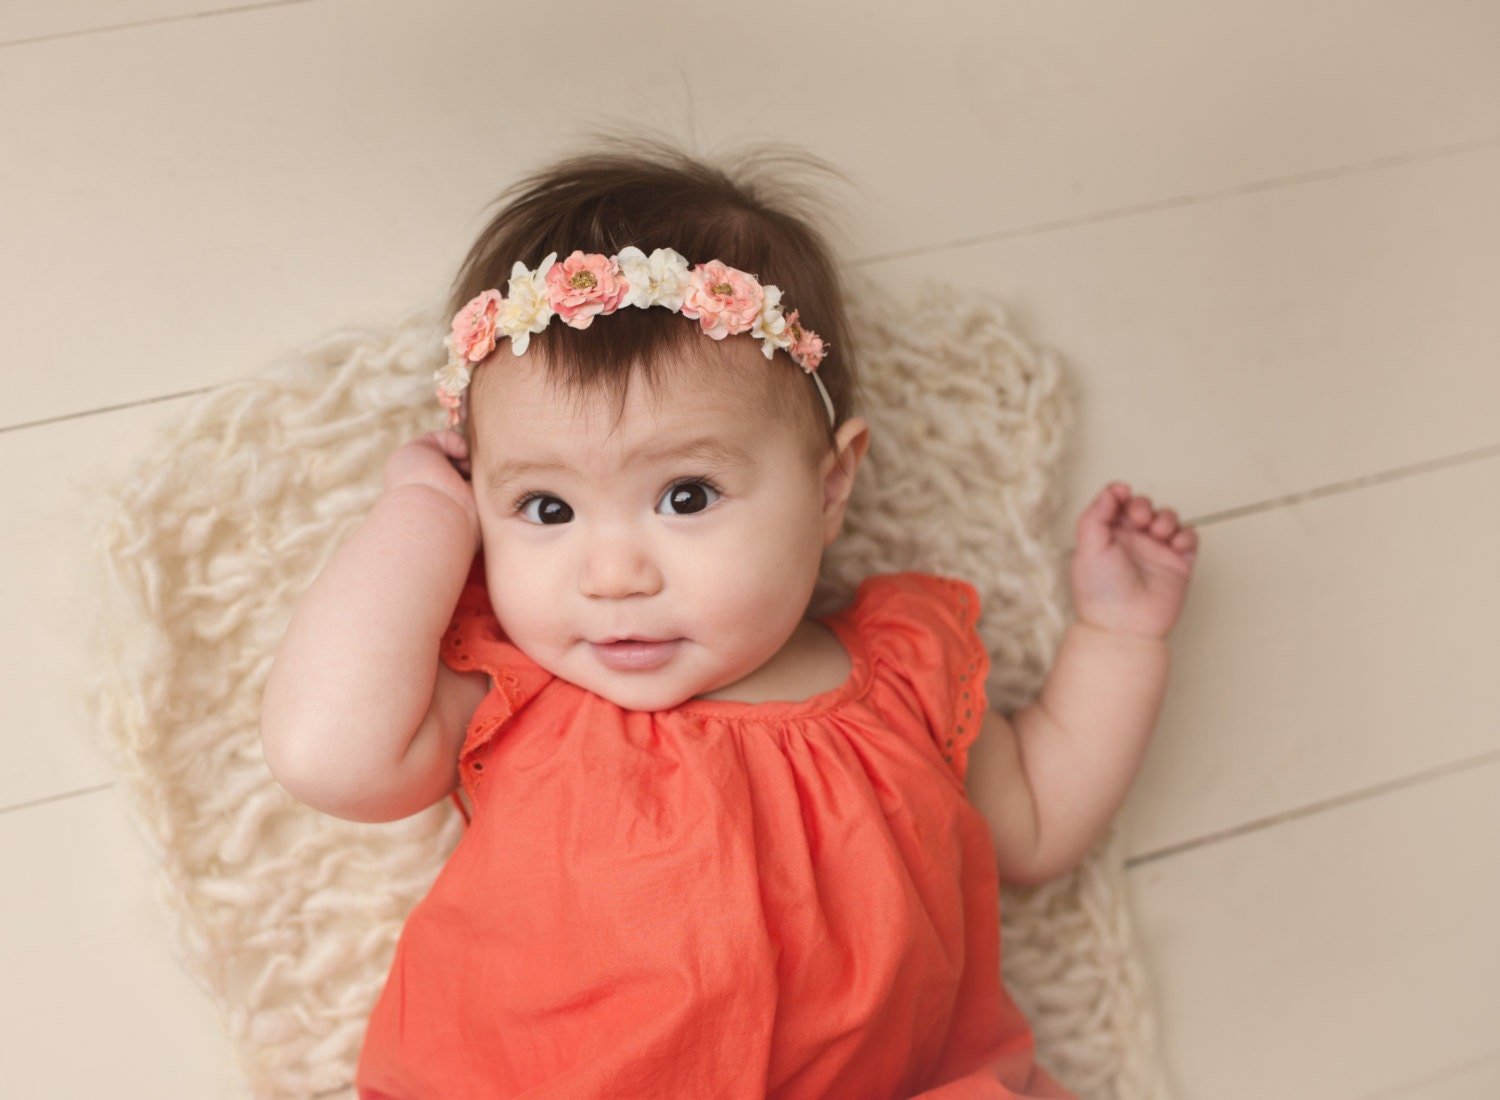 baby flower crown headband newborn flower crown coral baby. Black Bedroom Furniture Sets. Home Design Ideas